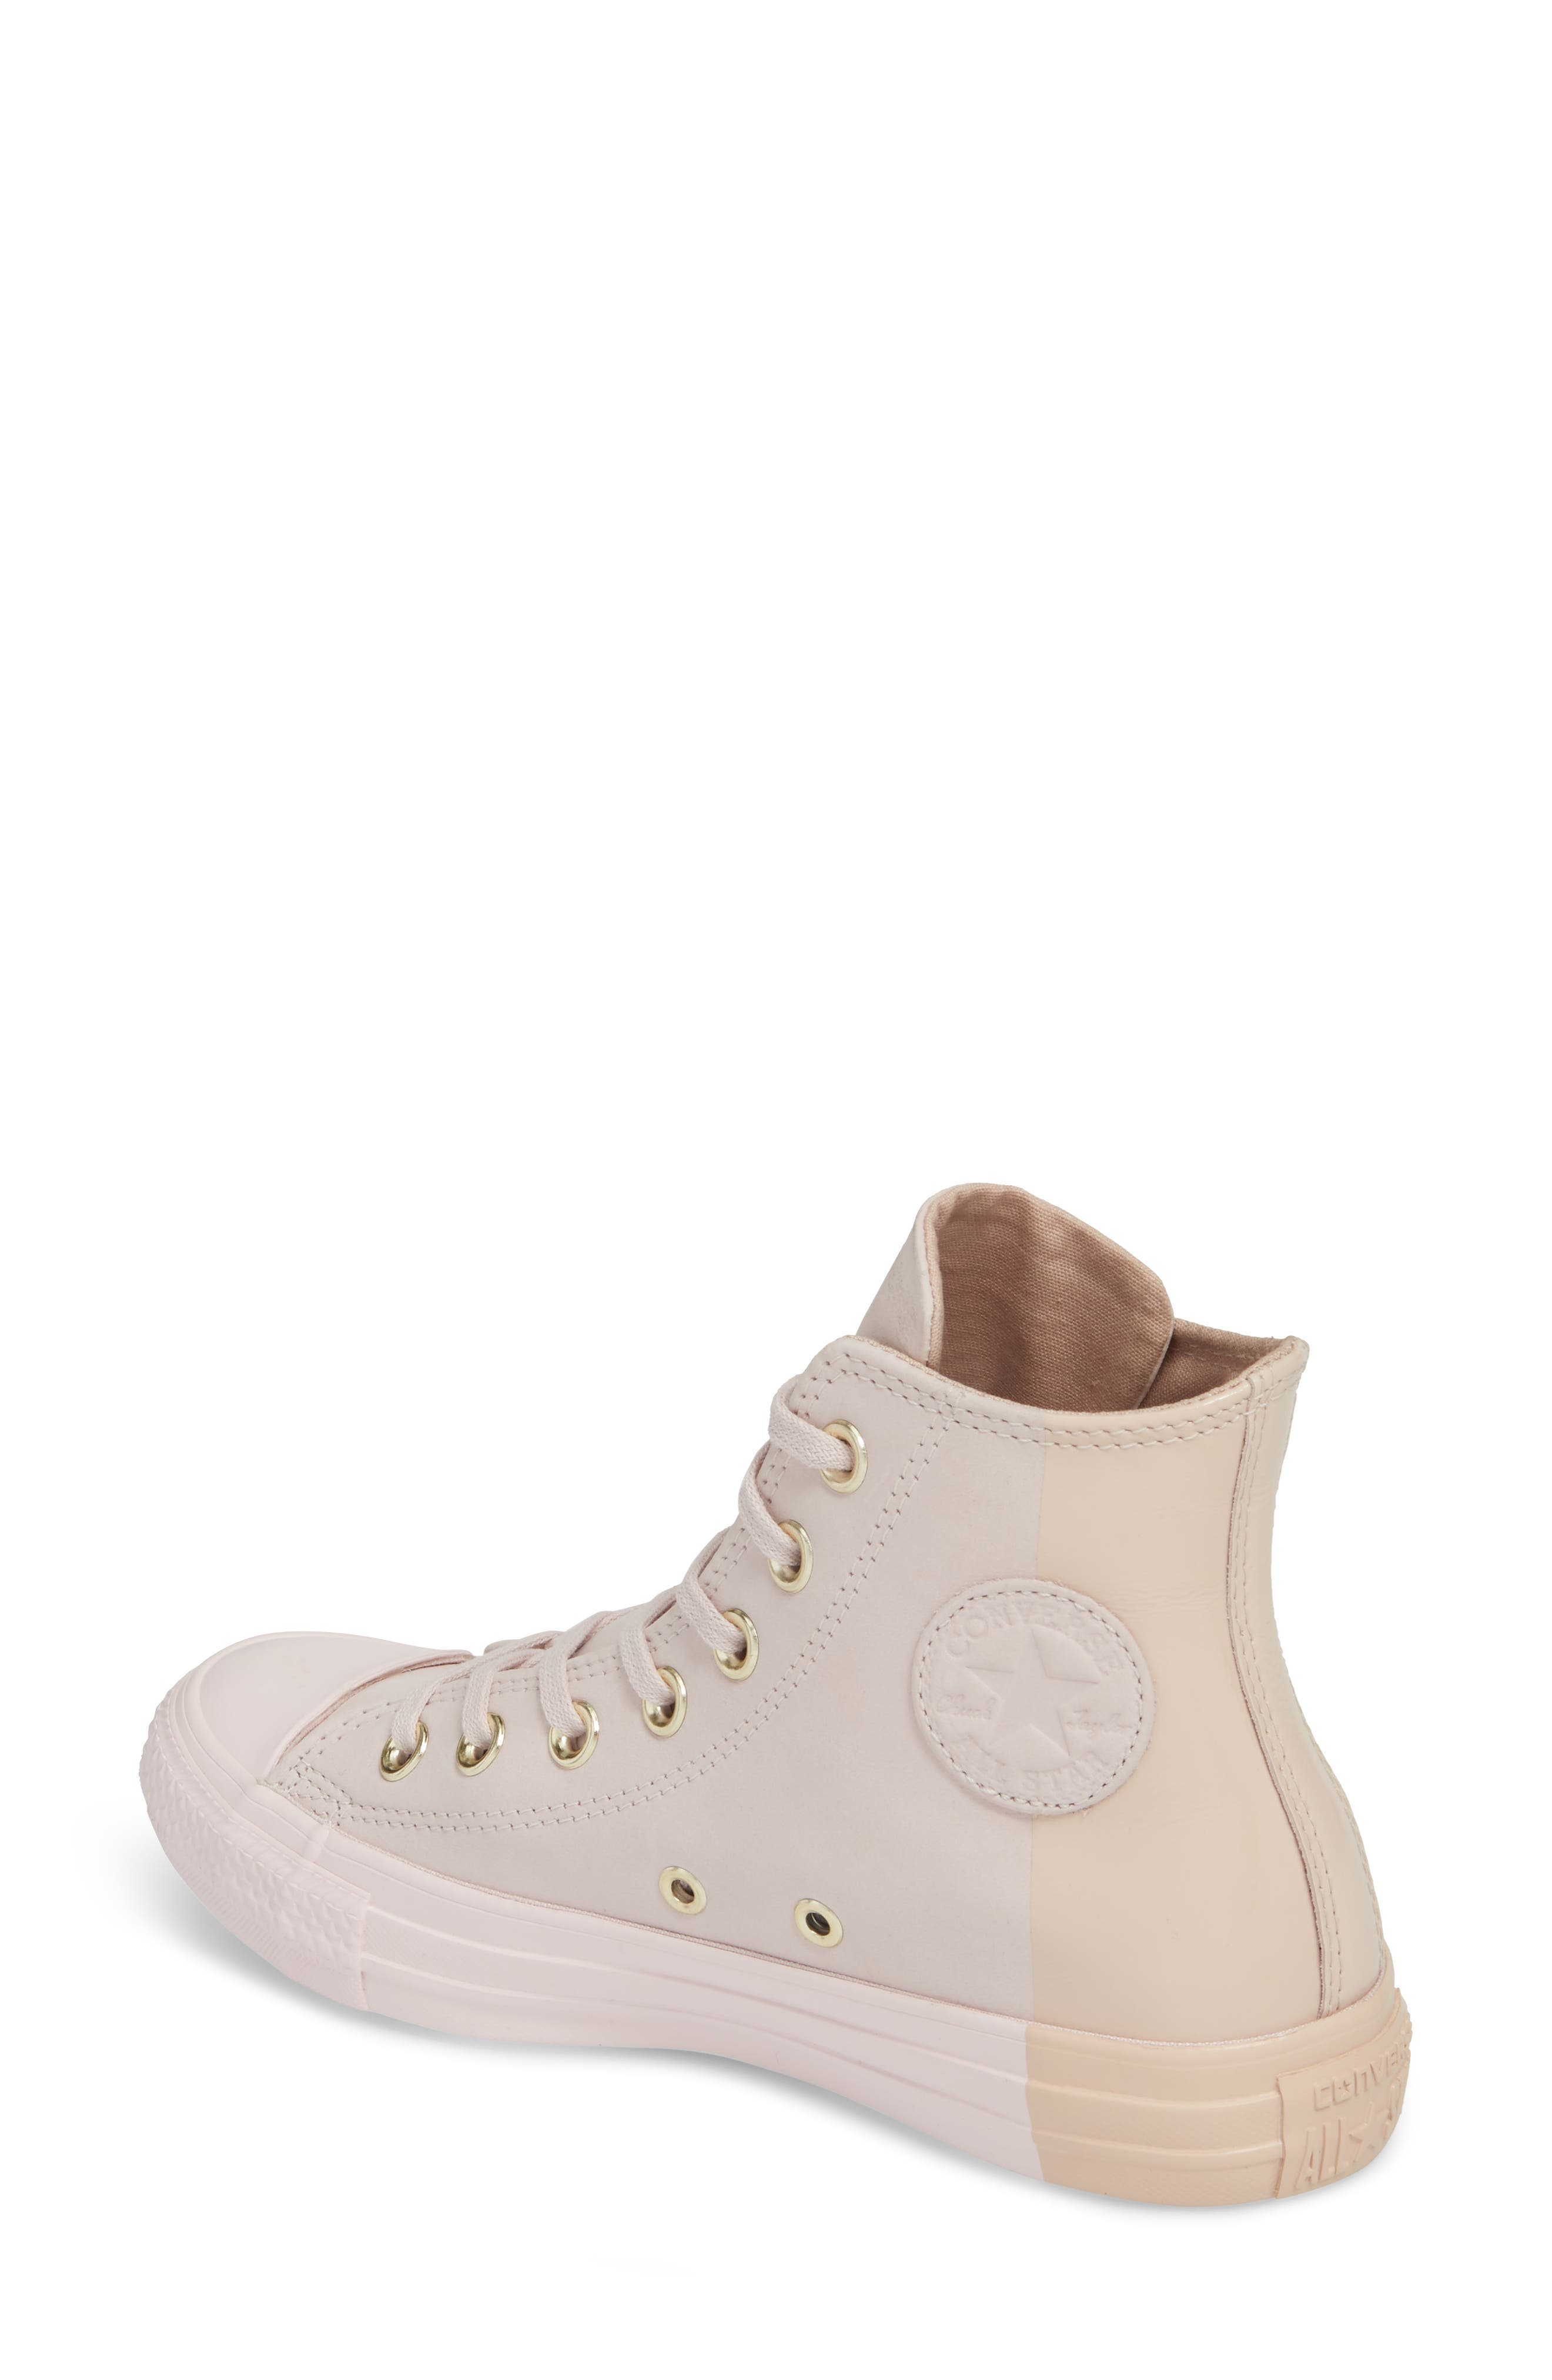 Chuck Taylor<sup>®</sup> All Star<sup>®</sup> Blocked High Top Sneaker,                             Alternate thumbnail 2, color,                             653